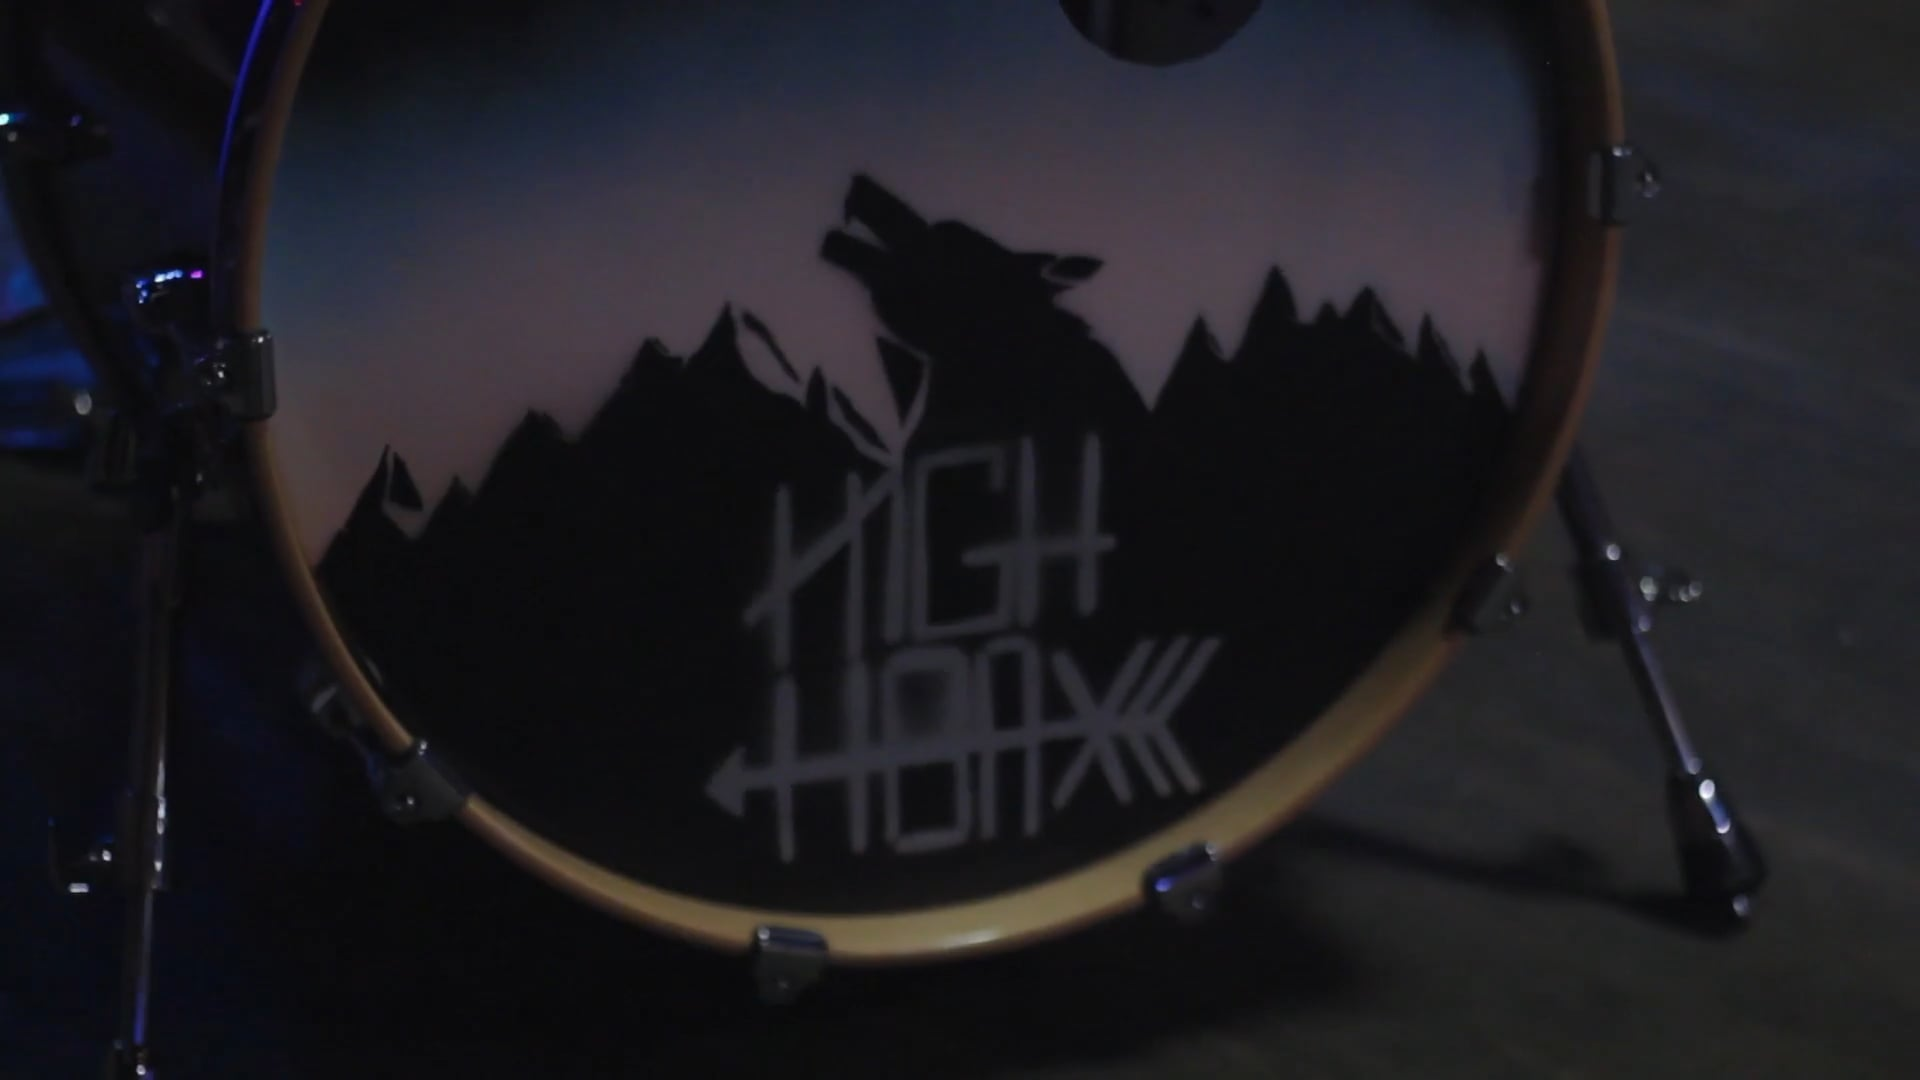 High Hoax - DIYing to Exist Trailer